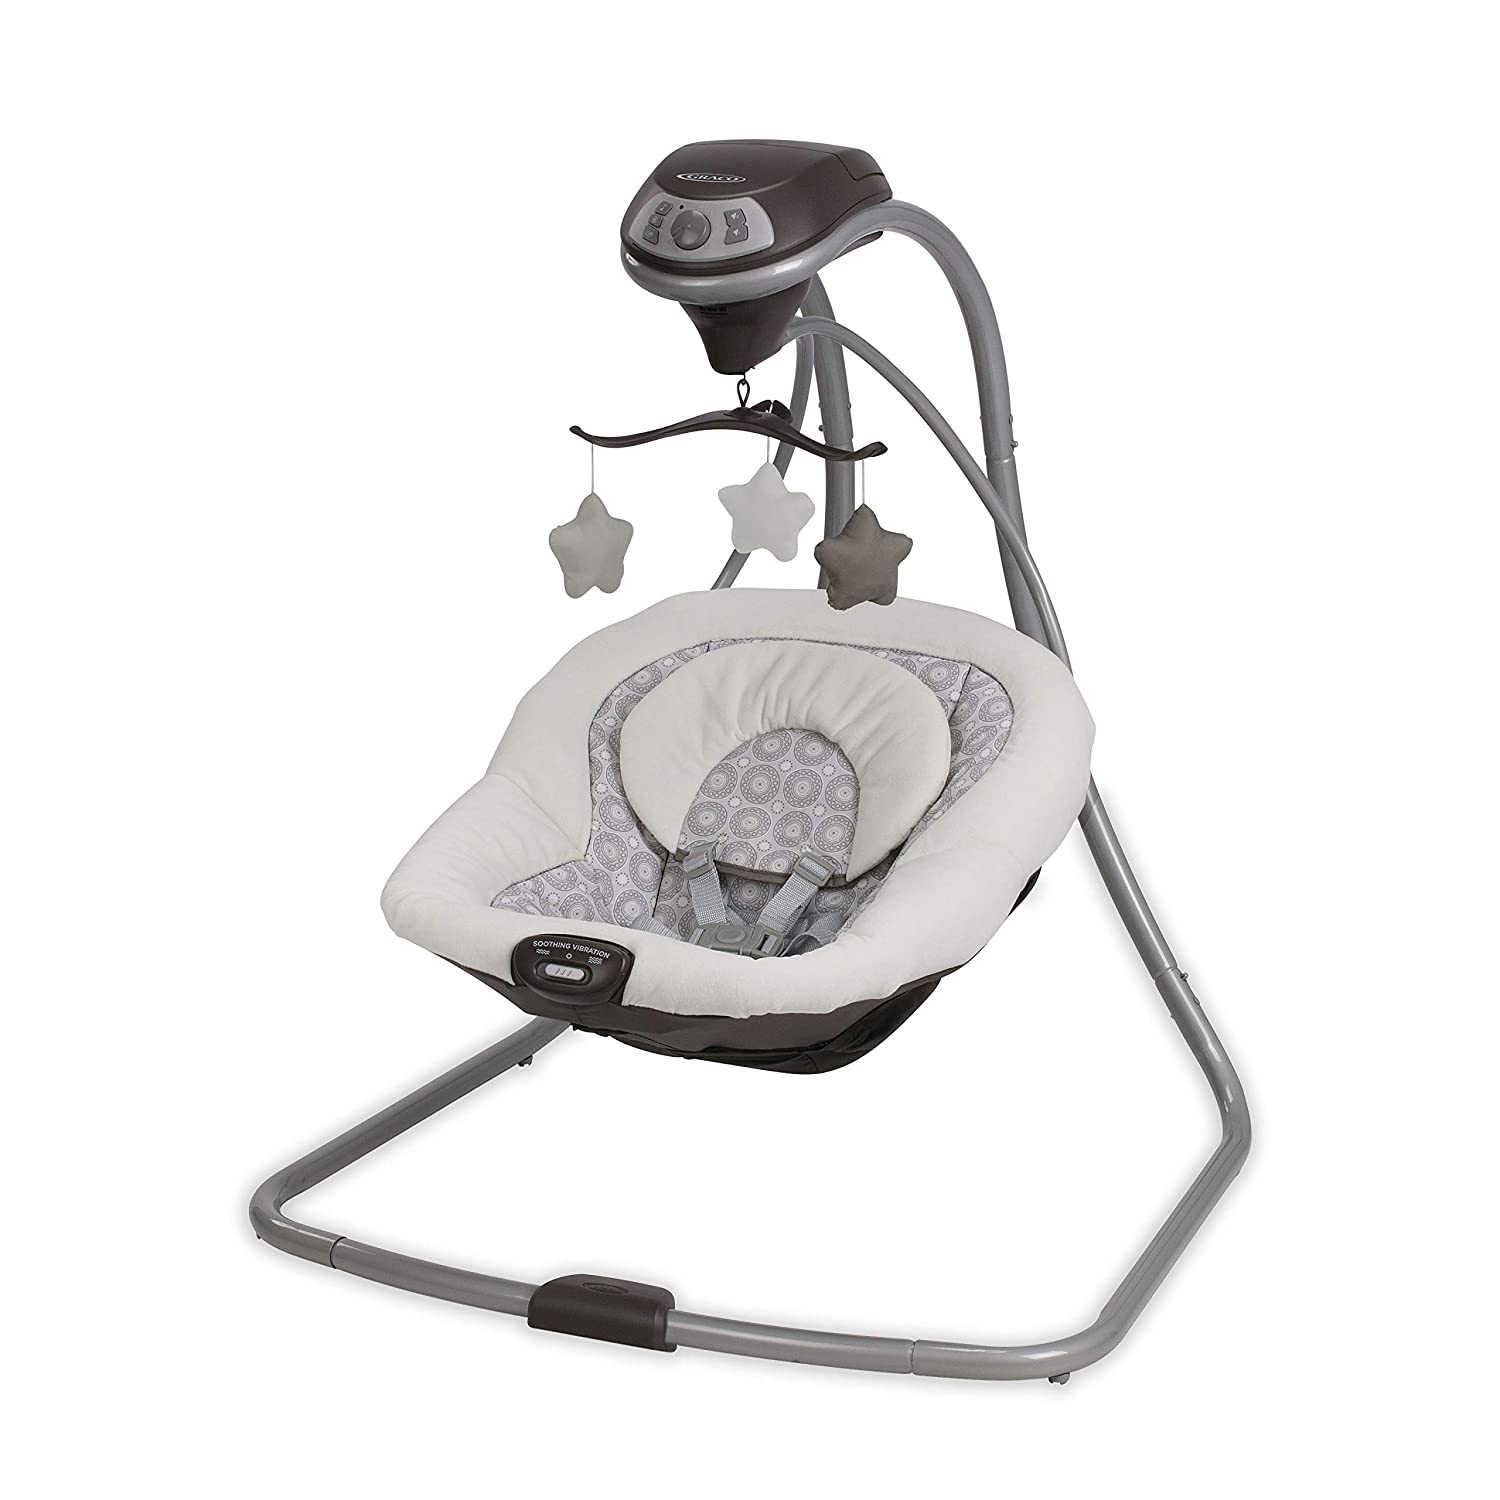 Graco Simple Sway Swing Baby